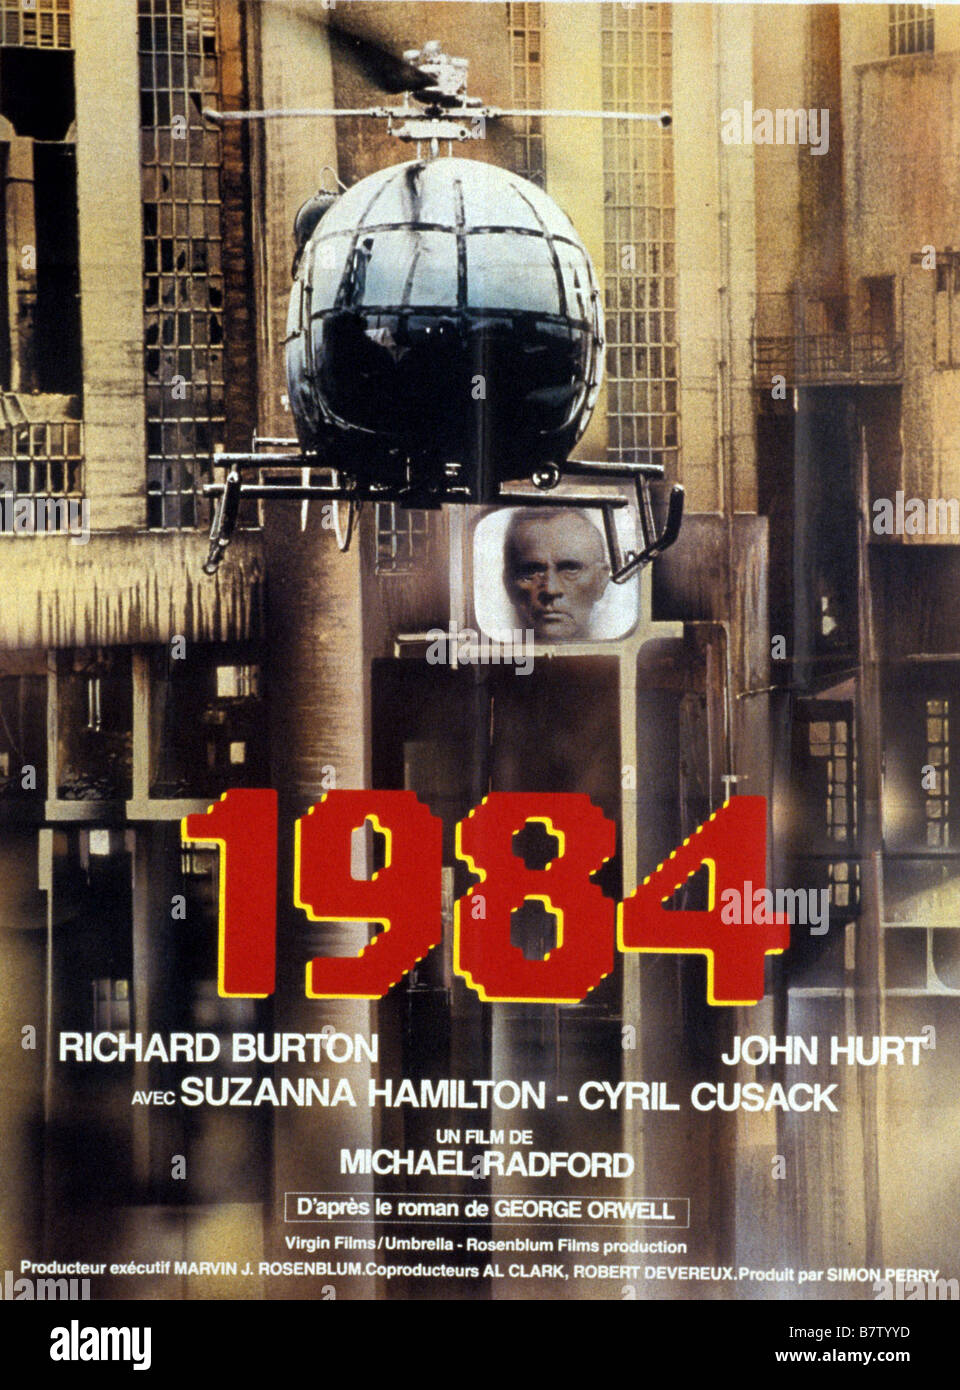 1984 Nineteen Eighty Four Année 1984 Angleterre Affiche Poster Stock ...